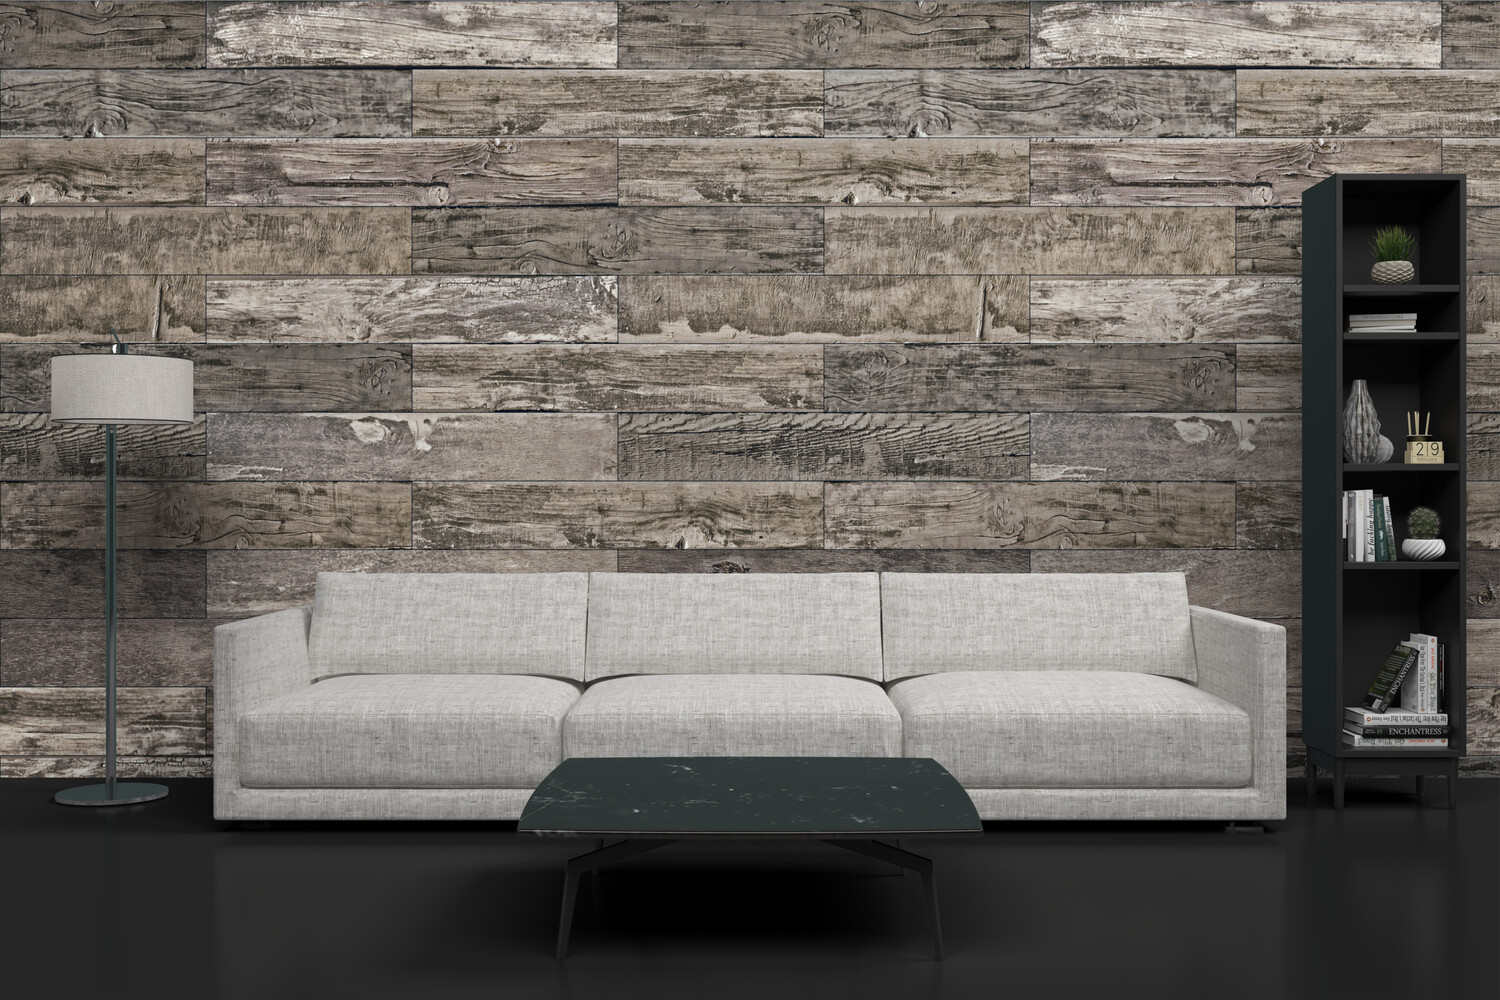 DISTRESSED WOOD | Vinyl Wall Wrap for Any Room | Removable Vinyl Wallpaper